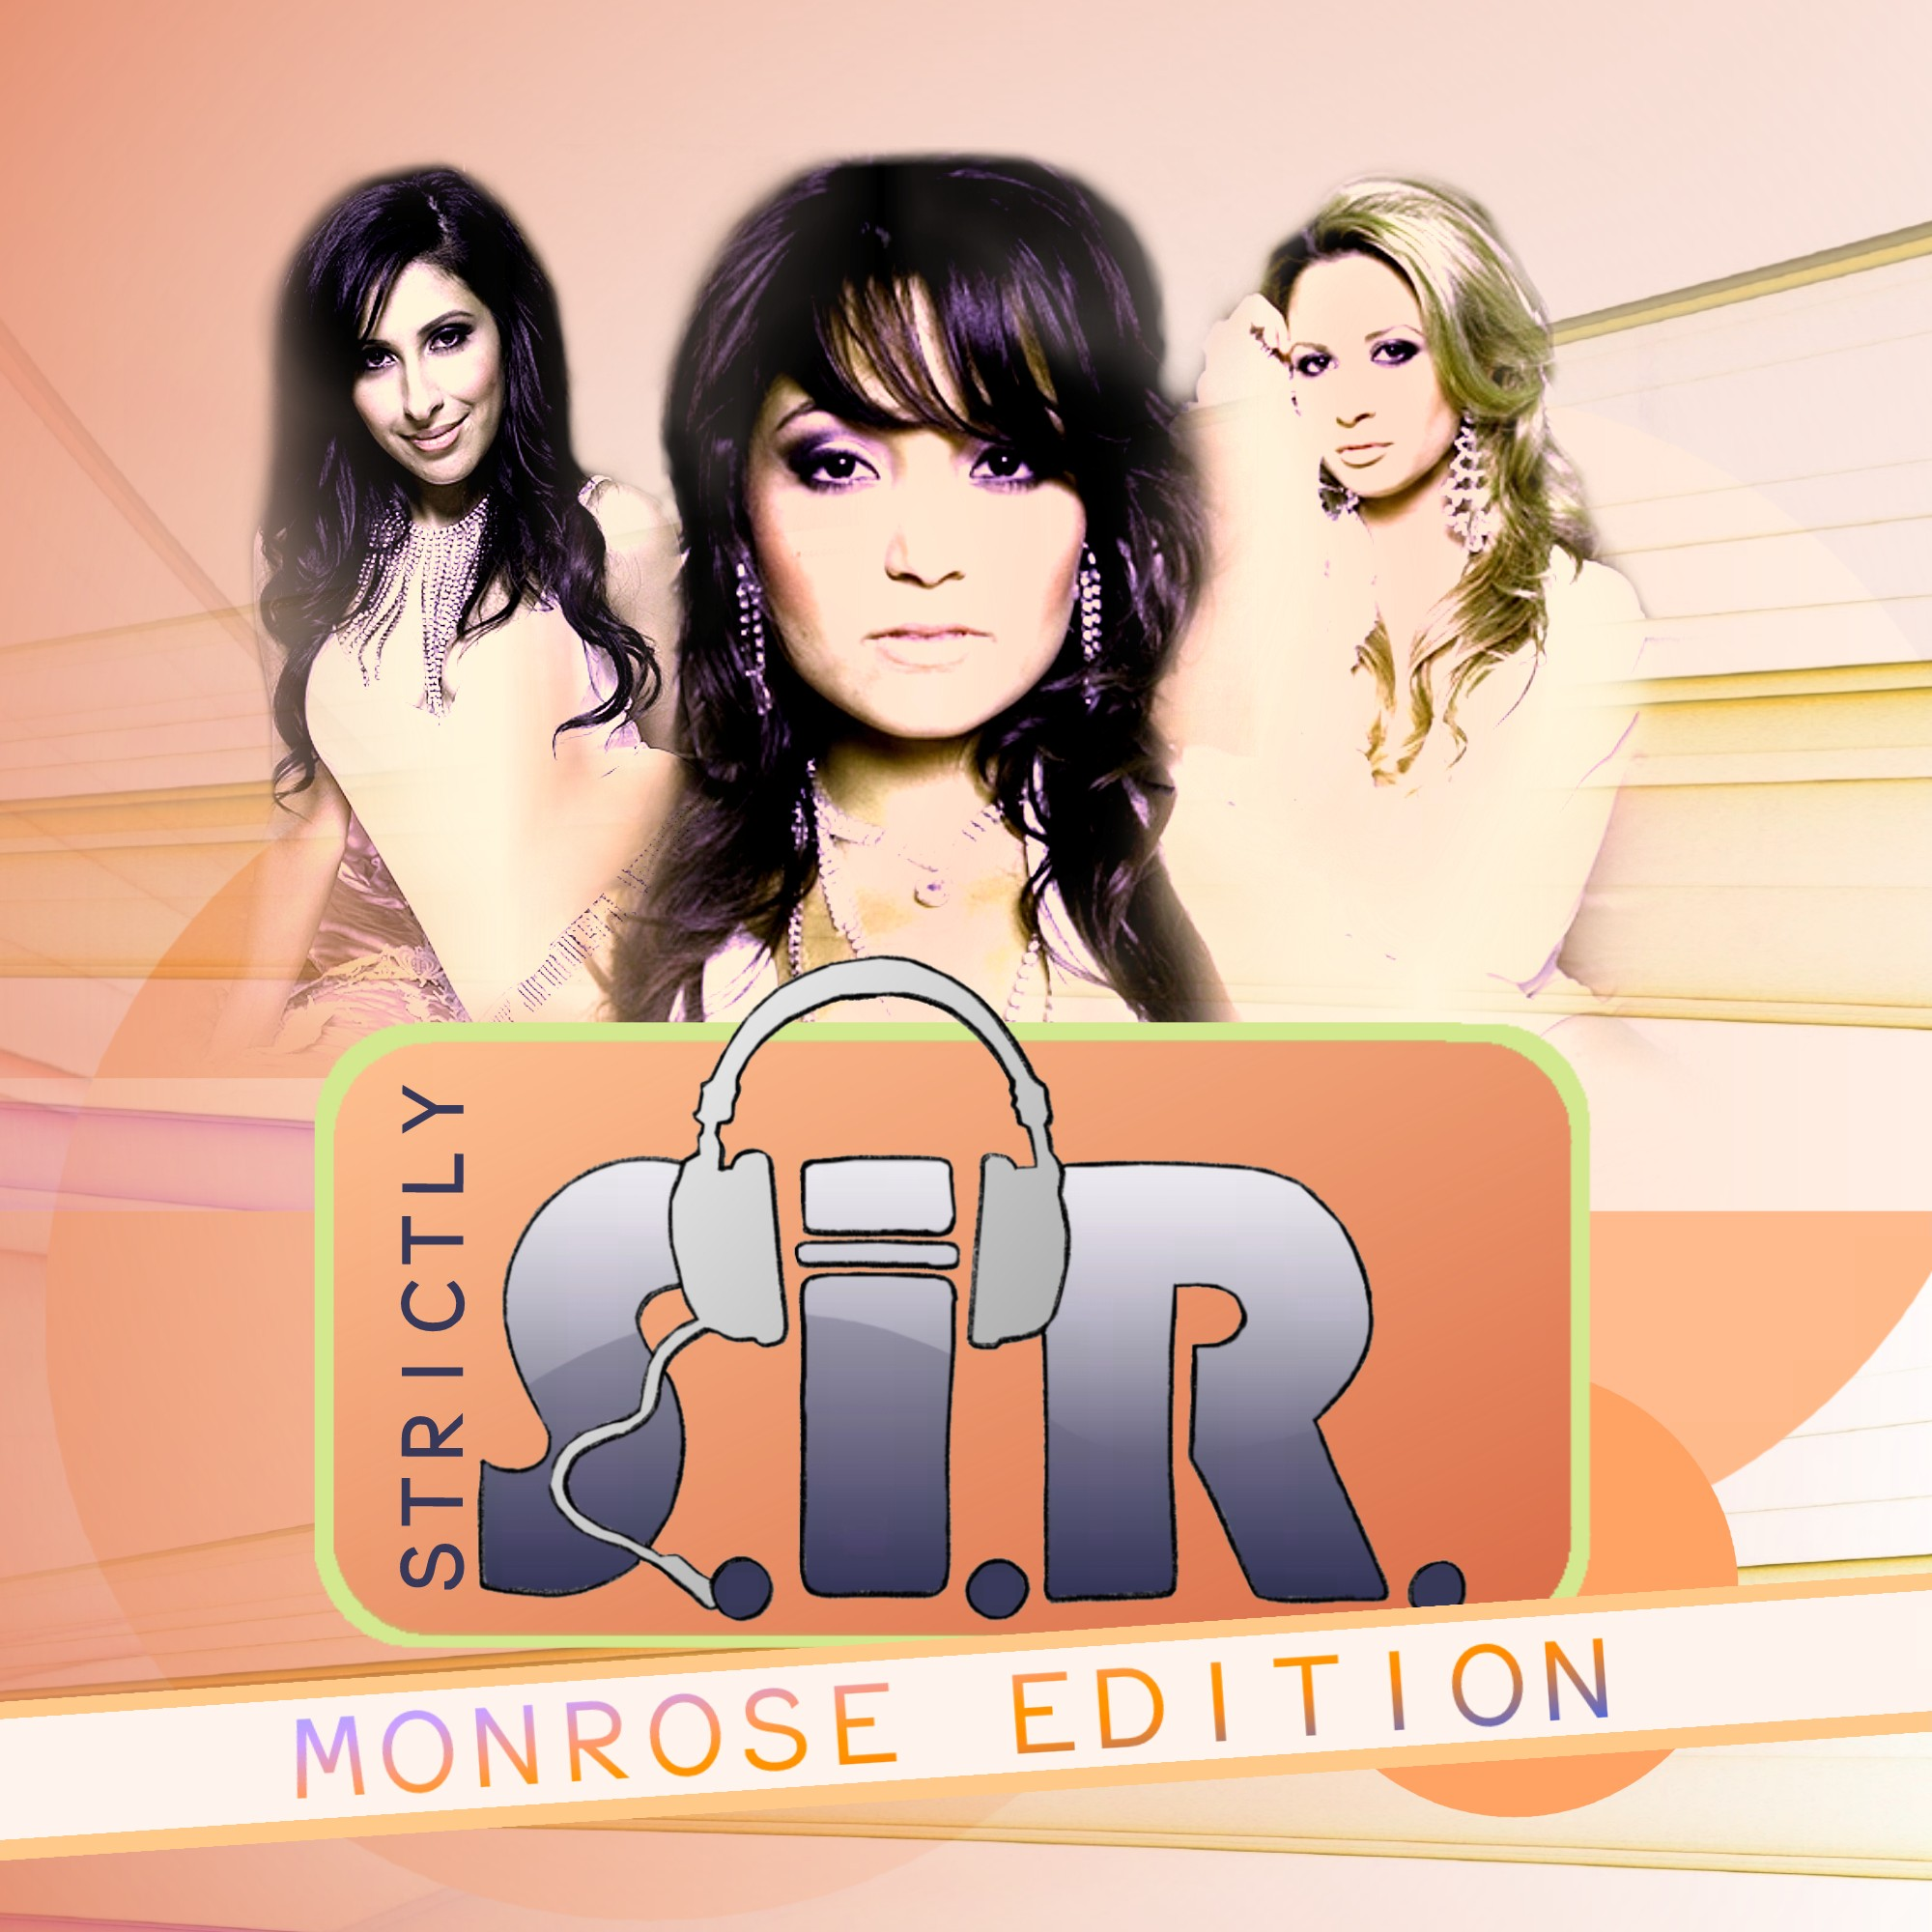 14 - Monrose vs. Ciara feat. Petey Pablo - (My Goodies are) Strictly Physical (S.I.R. Remix)